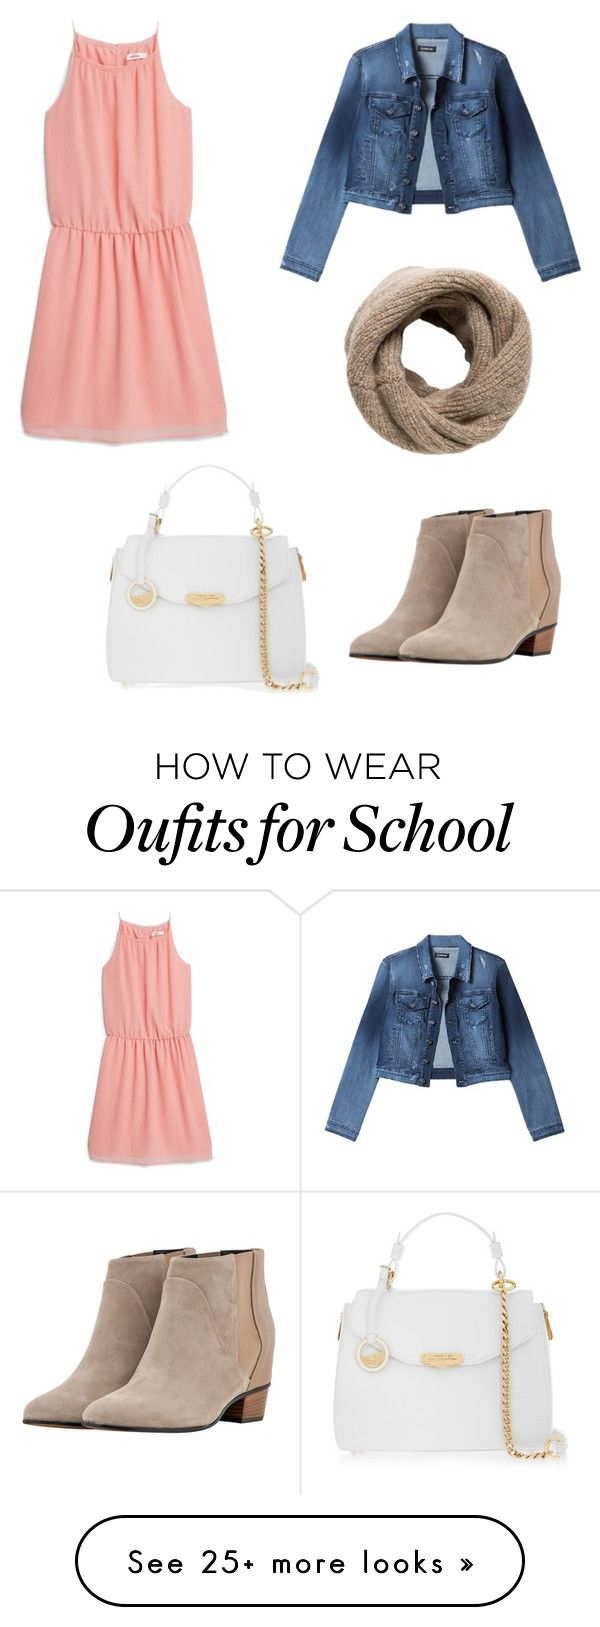 """McKenna back to school outfit"" by ssarbearxo on Polyvore featuring MANGO, Bebe, Augusta and Versace."